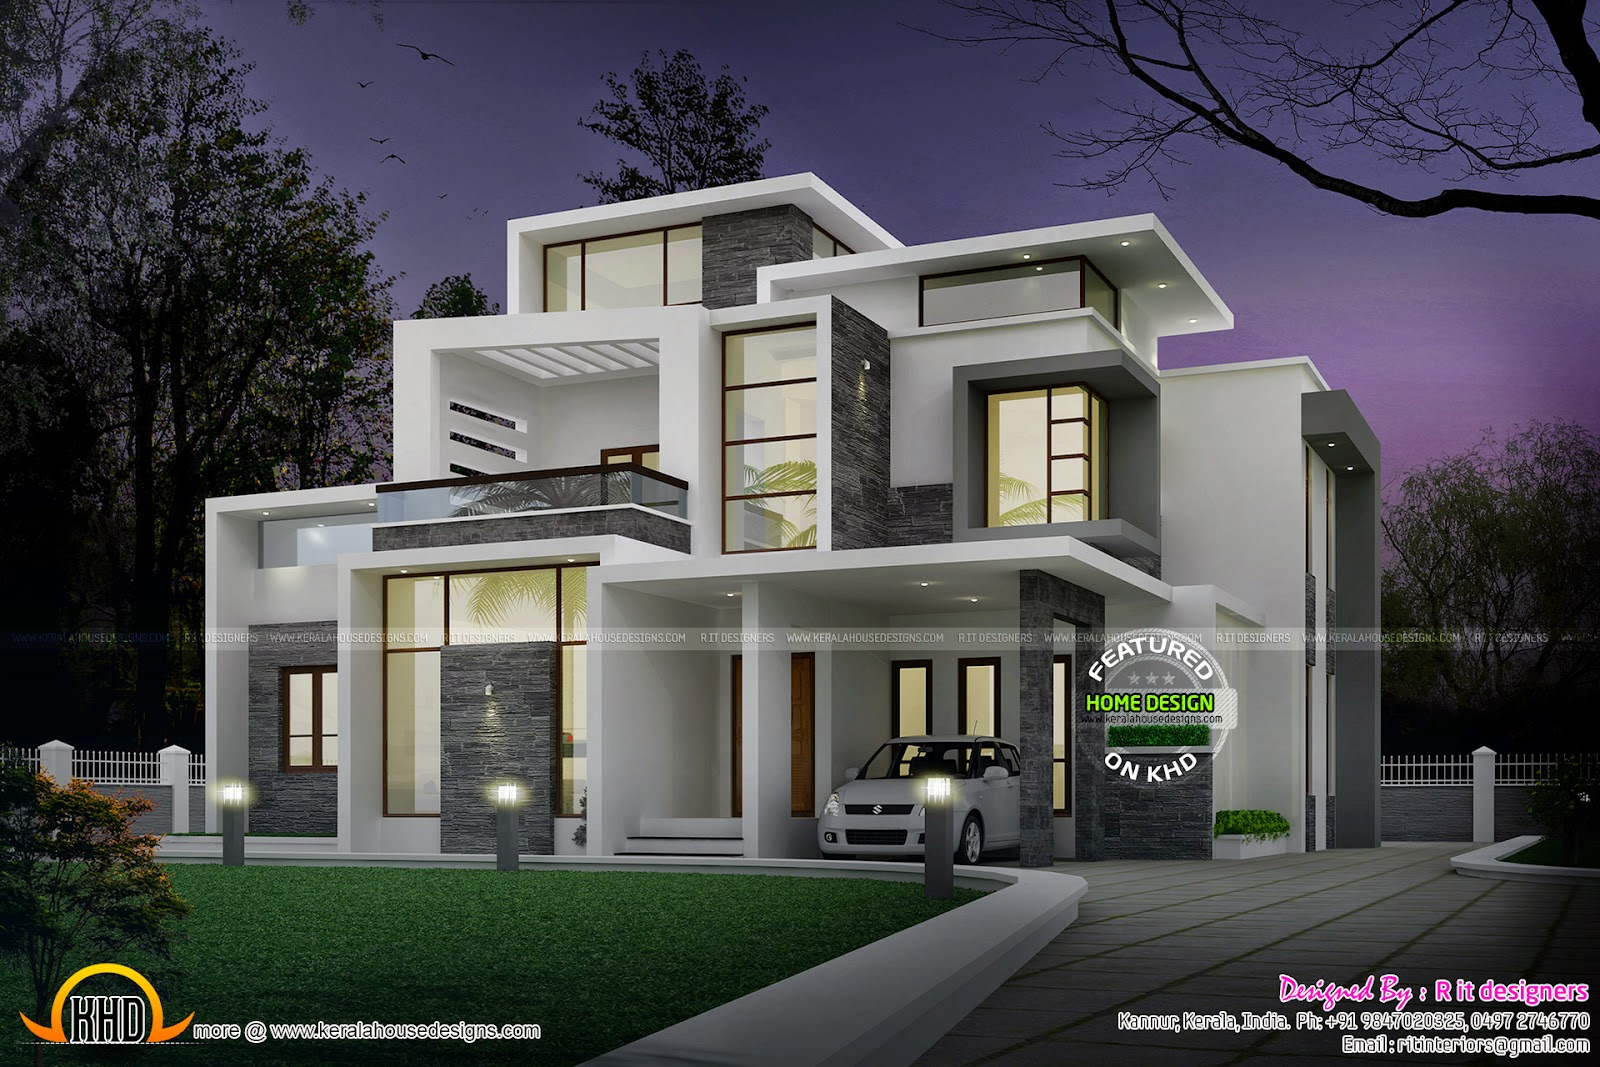 Grand contemporary home design kerala home design and for Contemporary homes floor plans